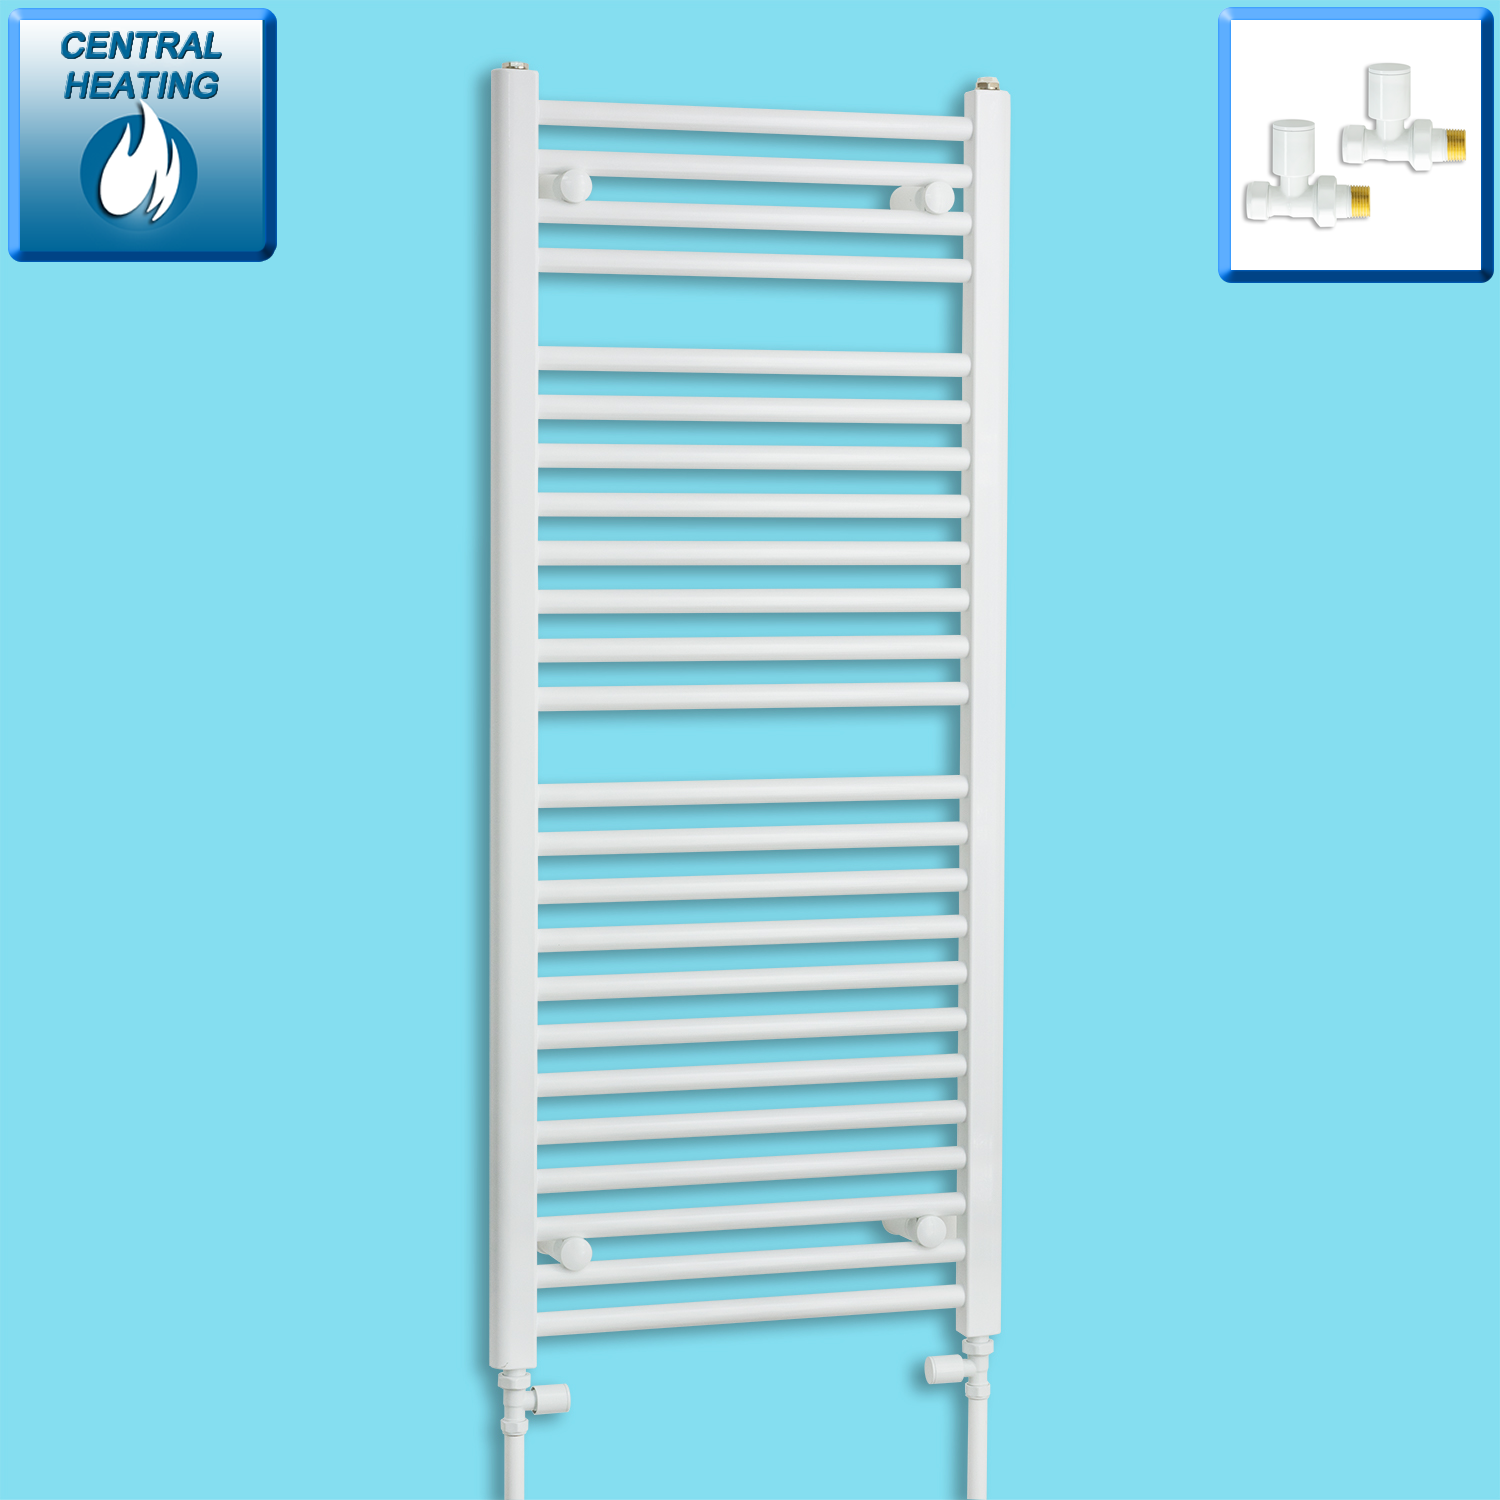 500mm Wide 1200mm High Flat White Heated Towel Rail Radiator Gas or Electric,With Straight Valve